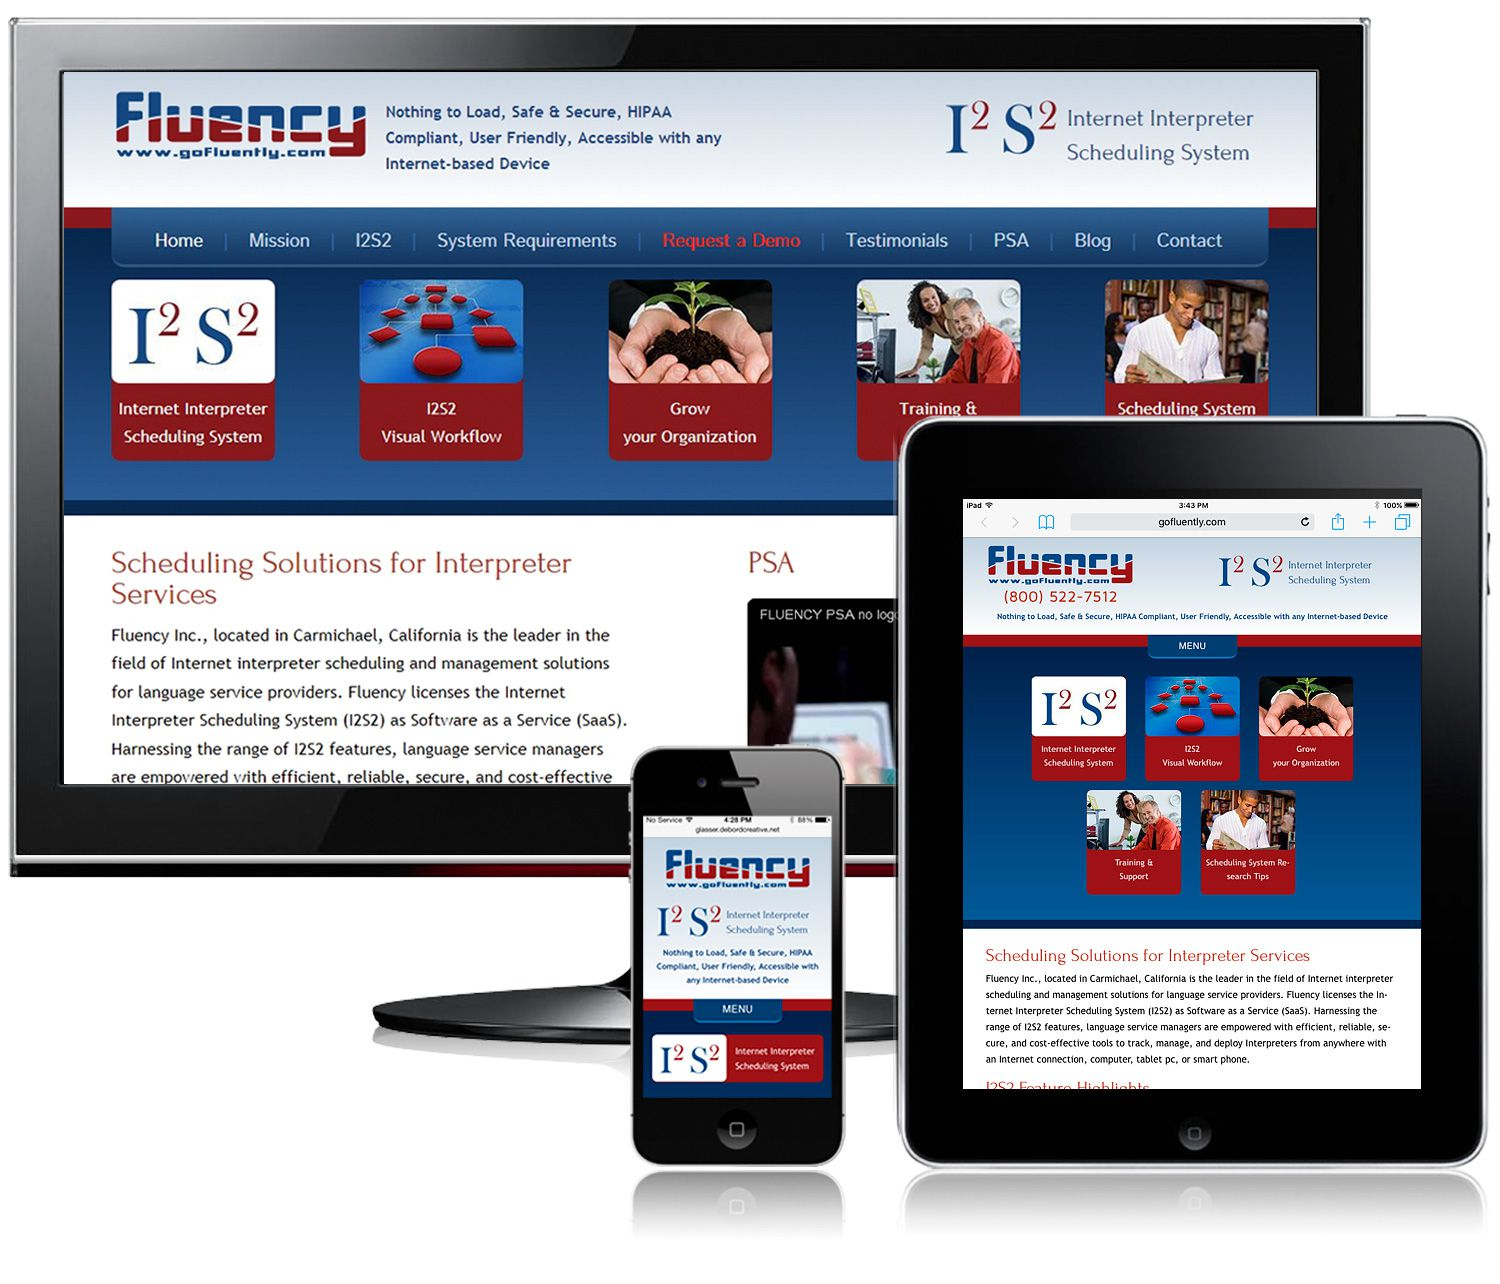 Fluency Interpeter Services